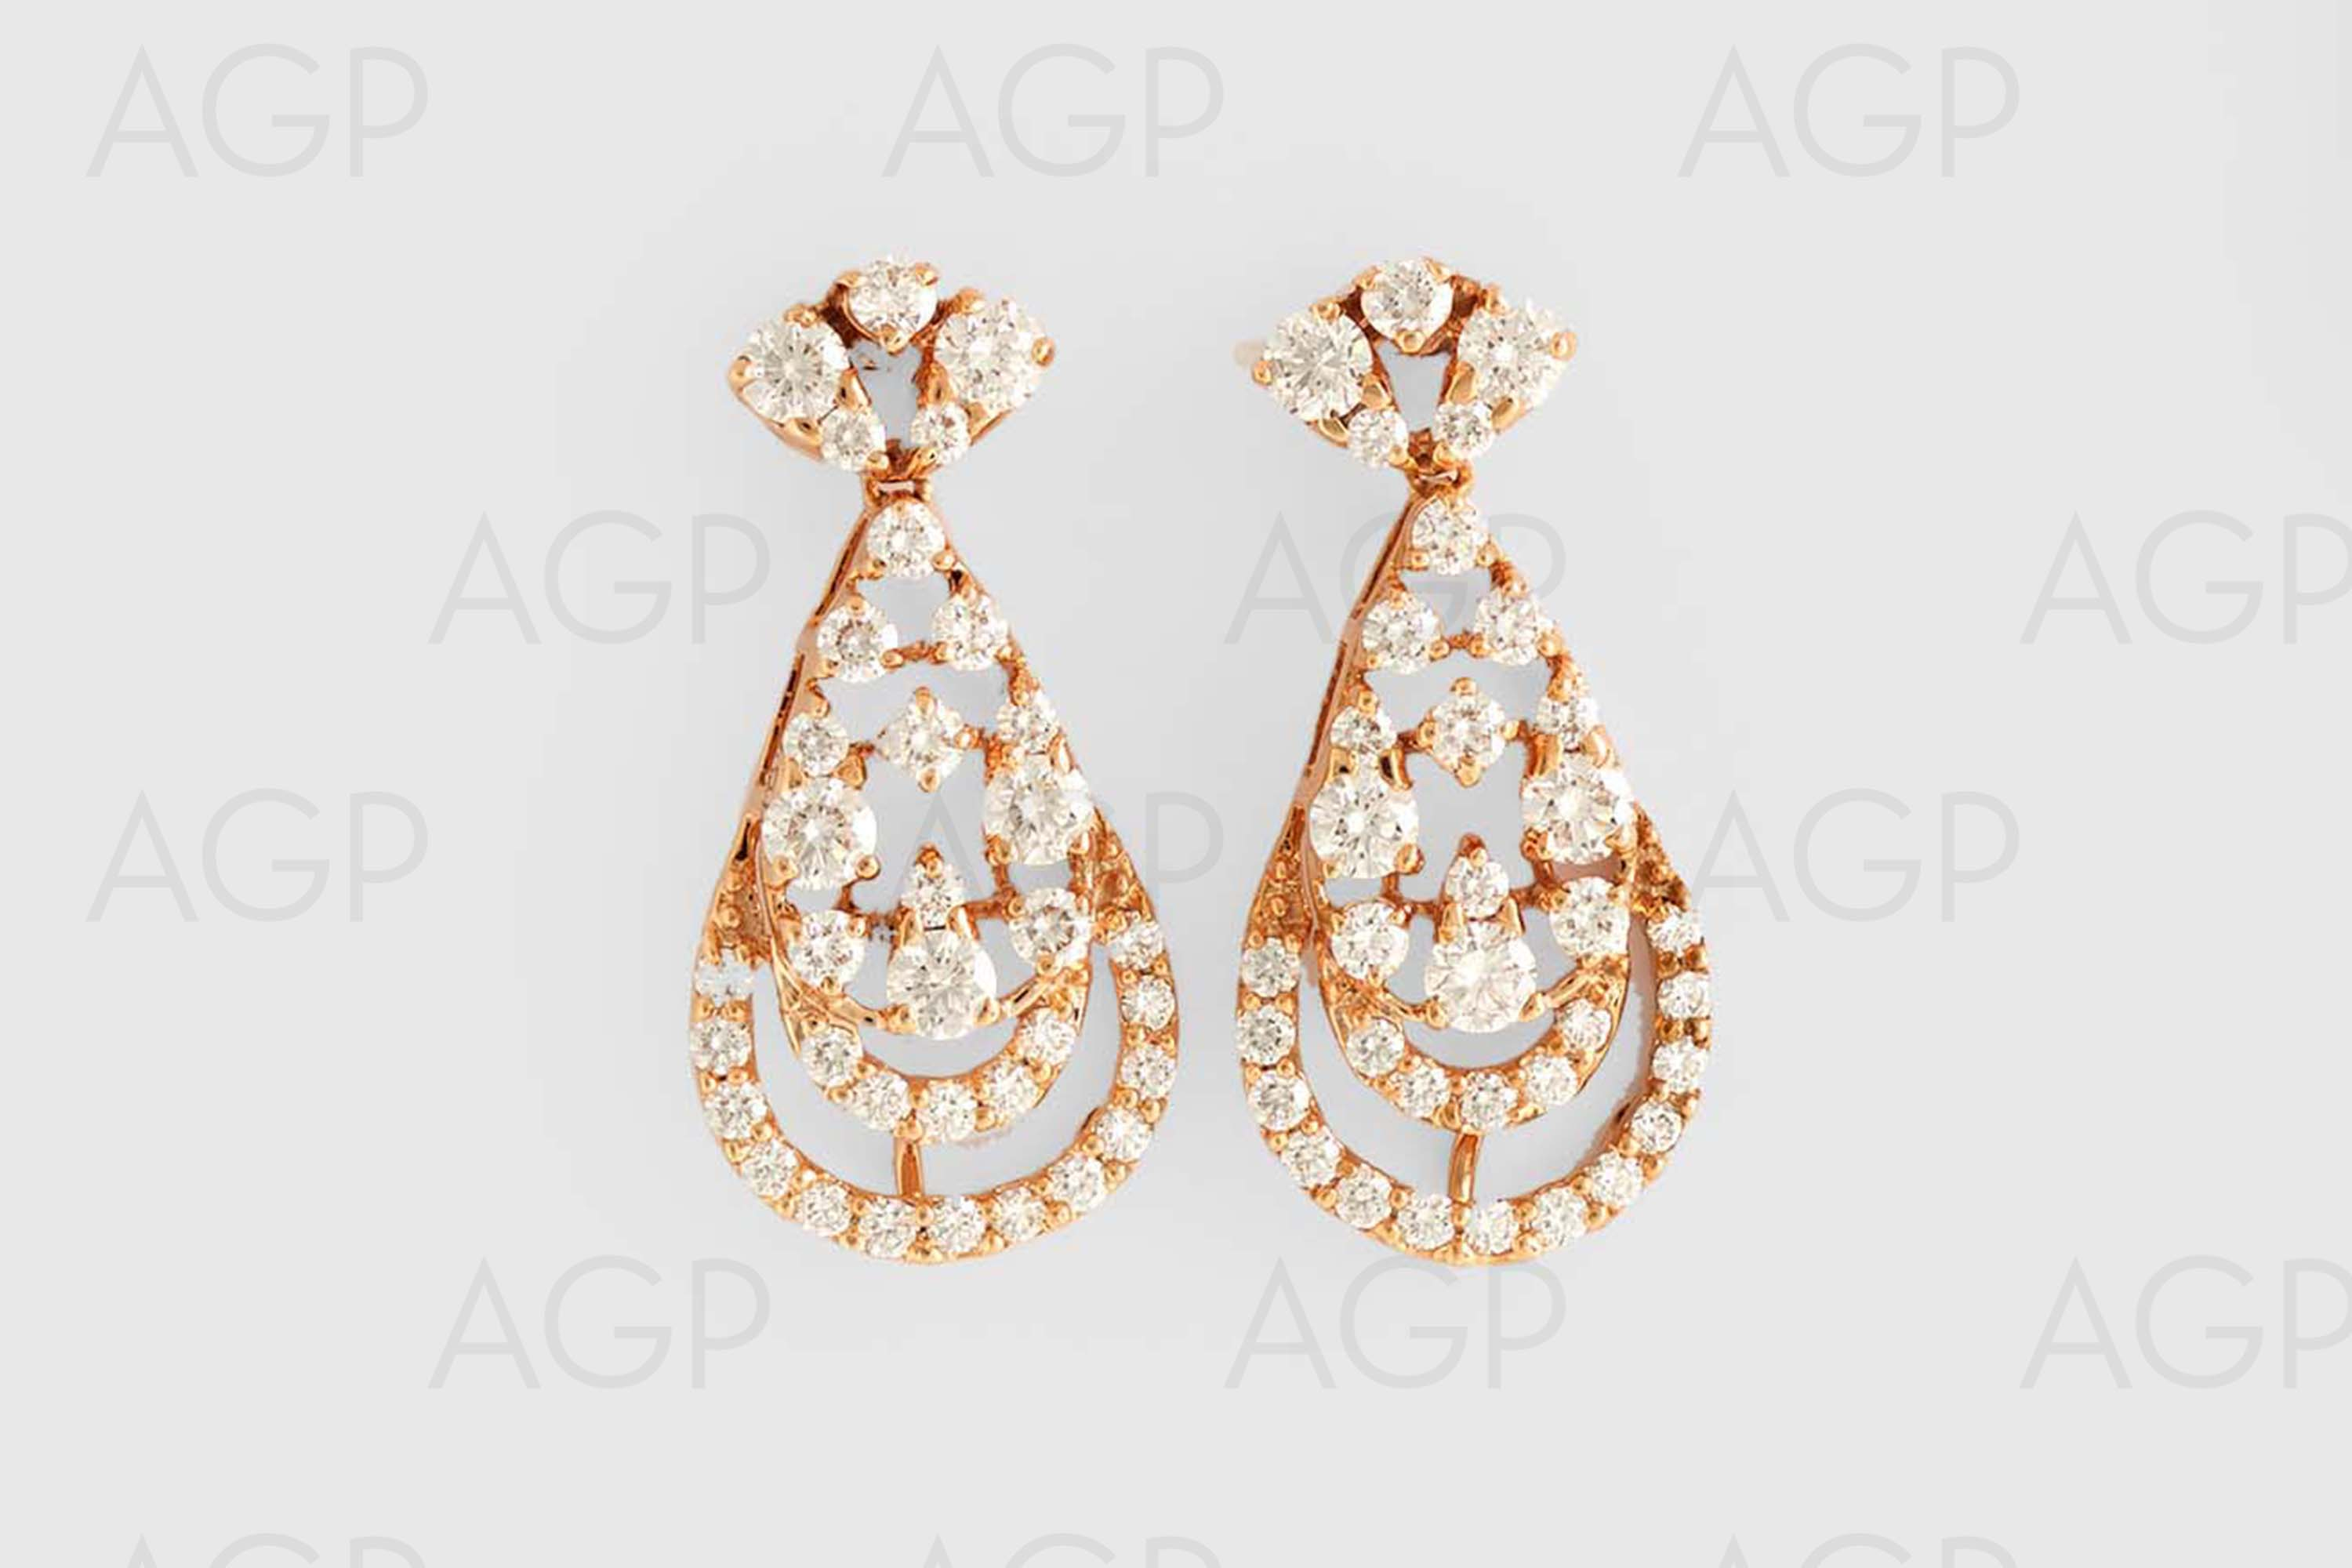 jade approximately diamond prong gold in cut that these feature diameter stud vintage round white yellow earrings img each placed style and antique centrally measures set a